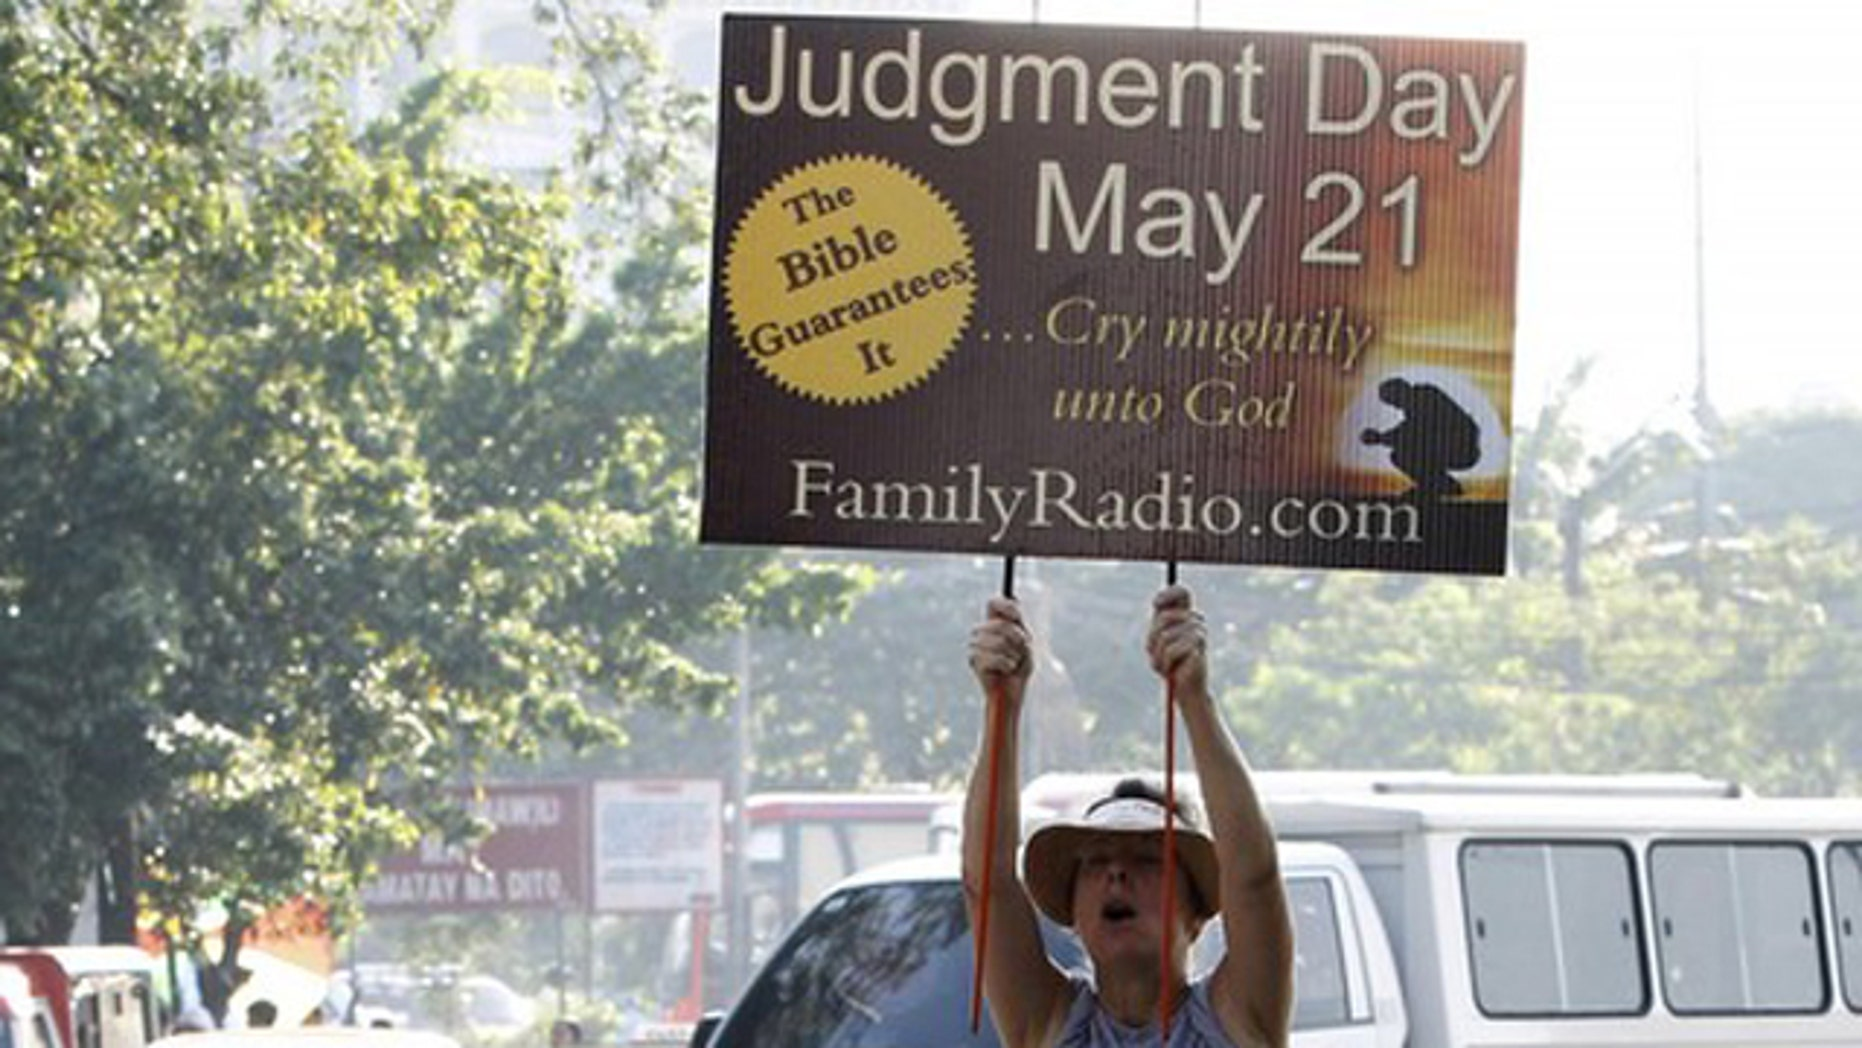 May 13: Debra Schaper of Maryland, who is a member of a religious group called Family Radio, displays a placard while spreading the group's prediction that the world will end on May 21, 2011.